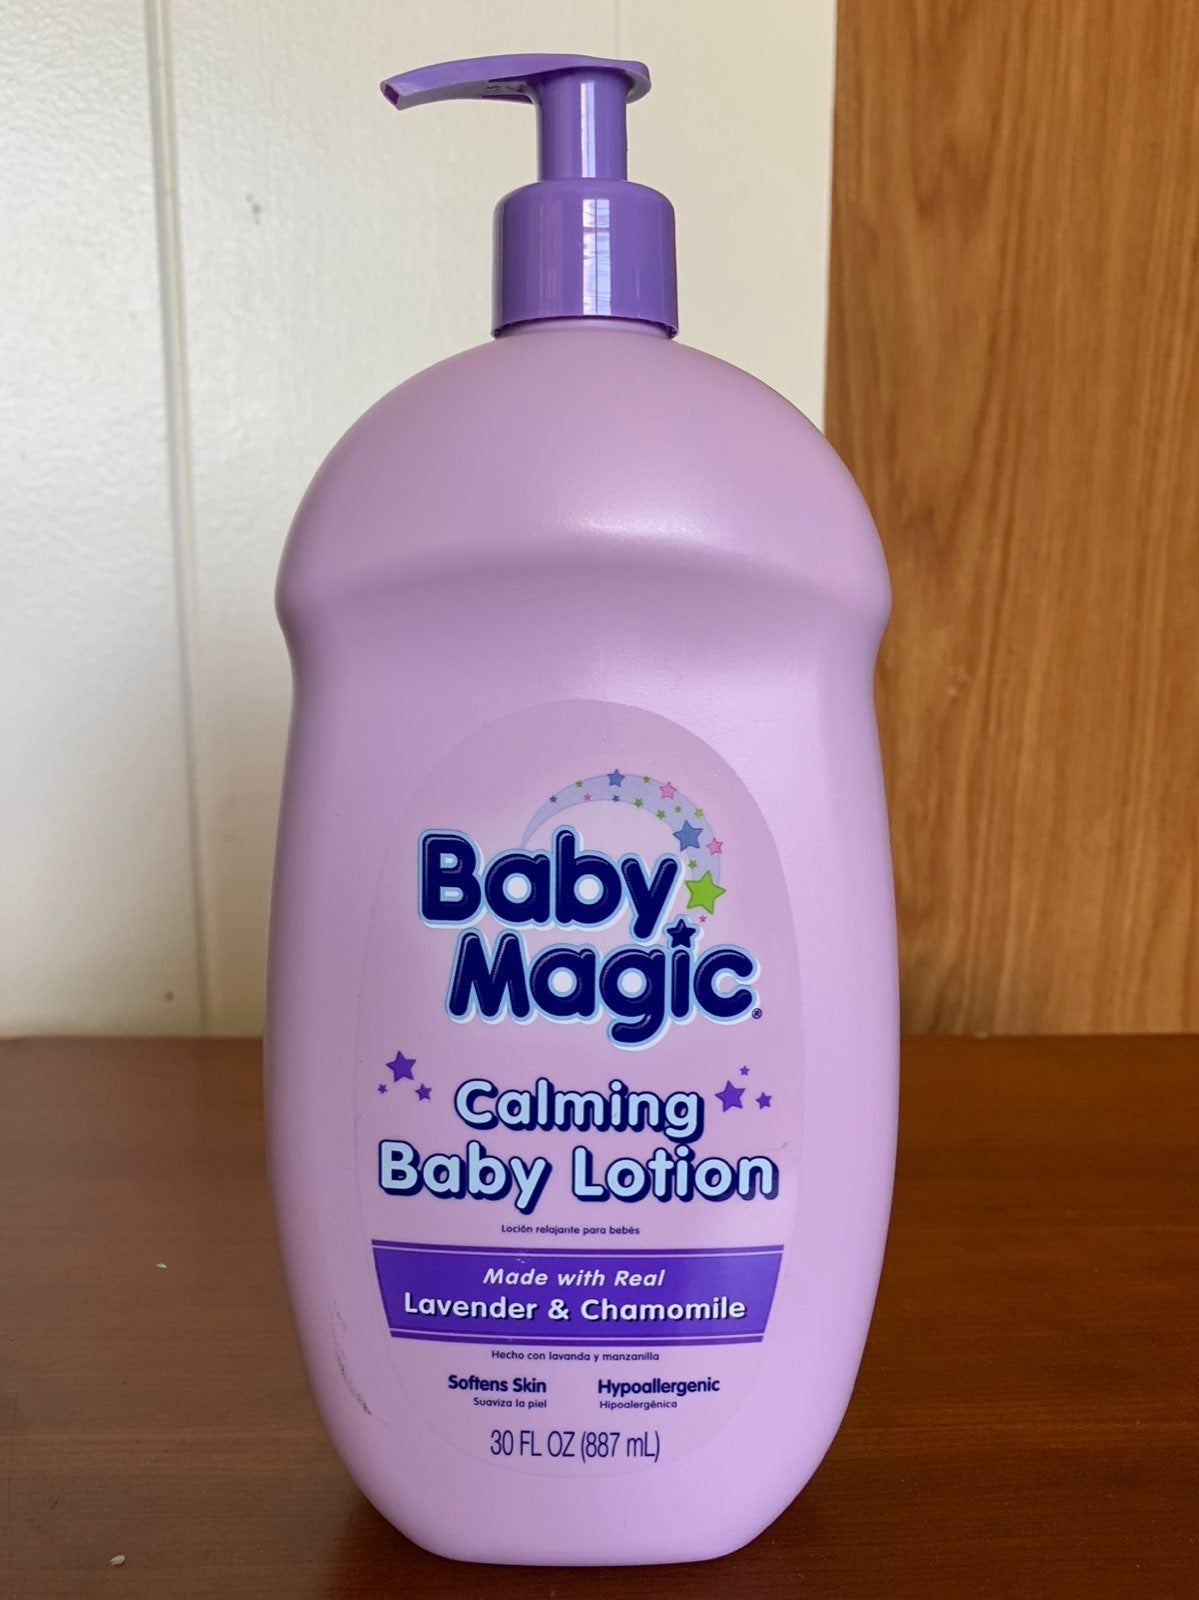 Baby Magic Lotion